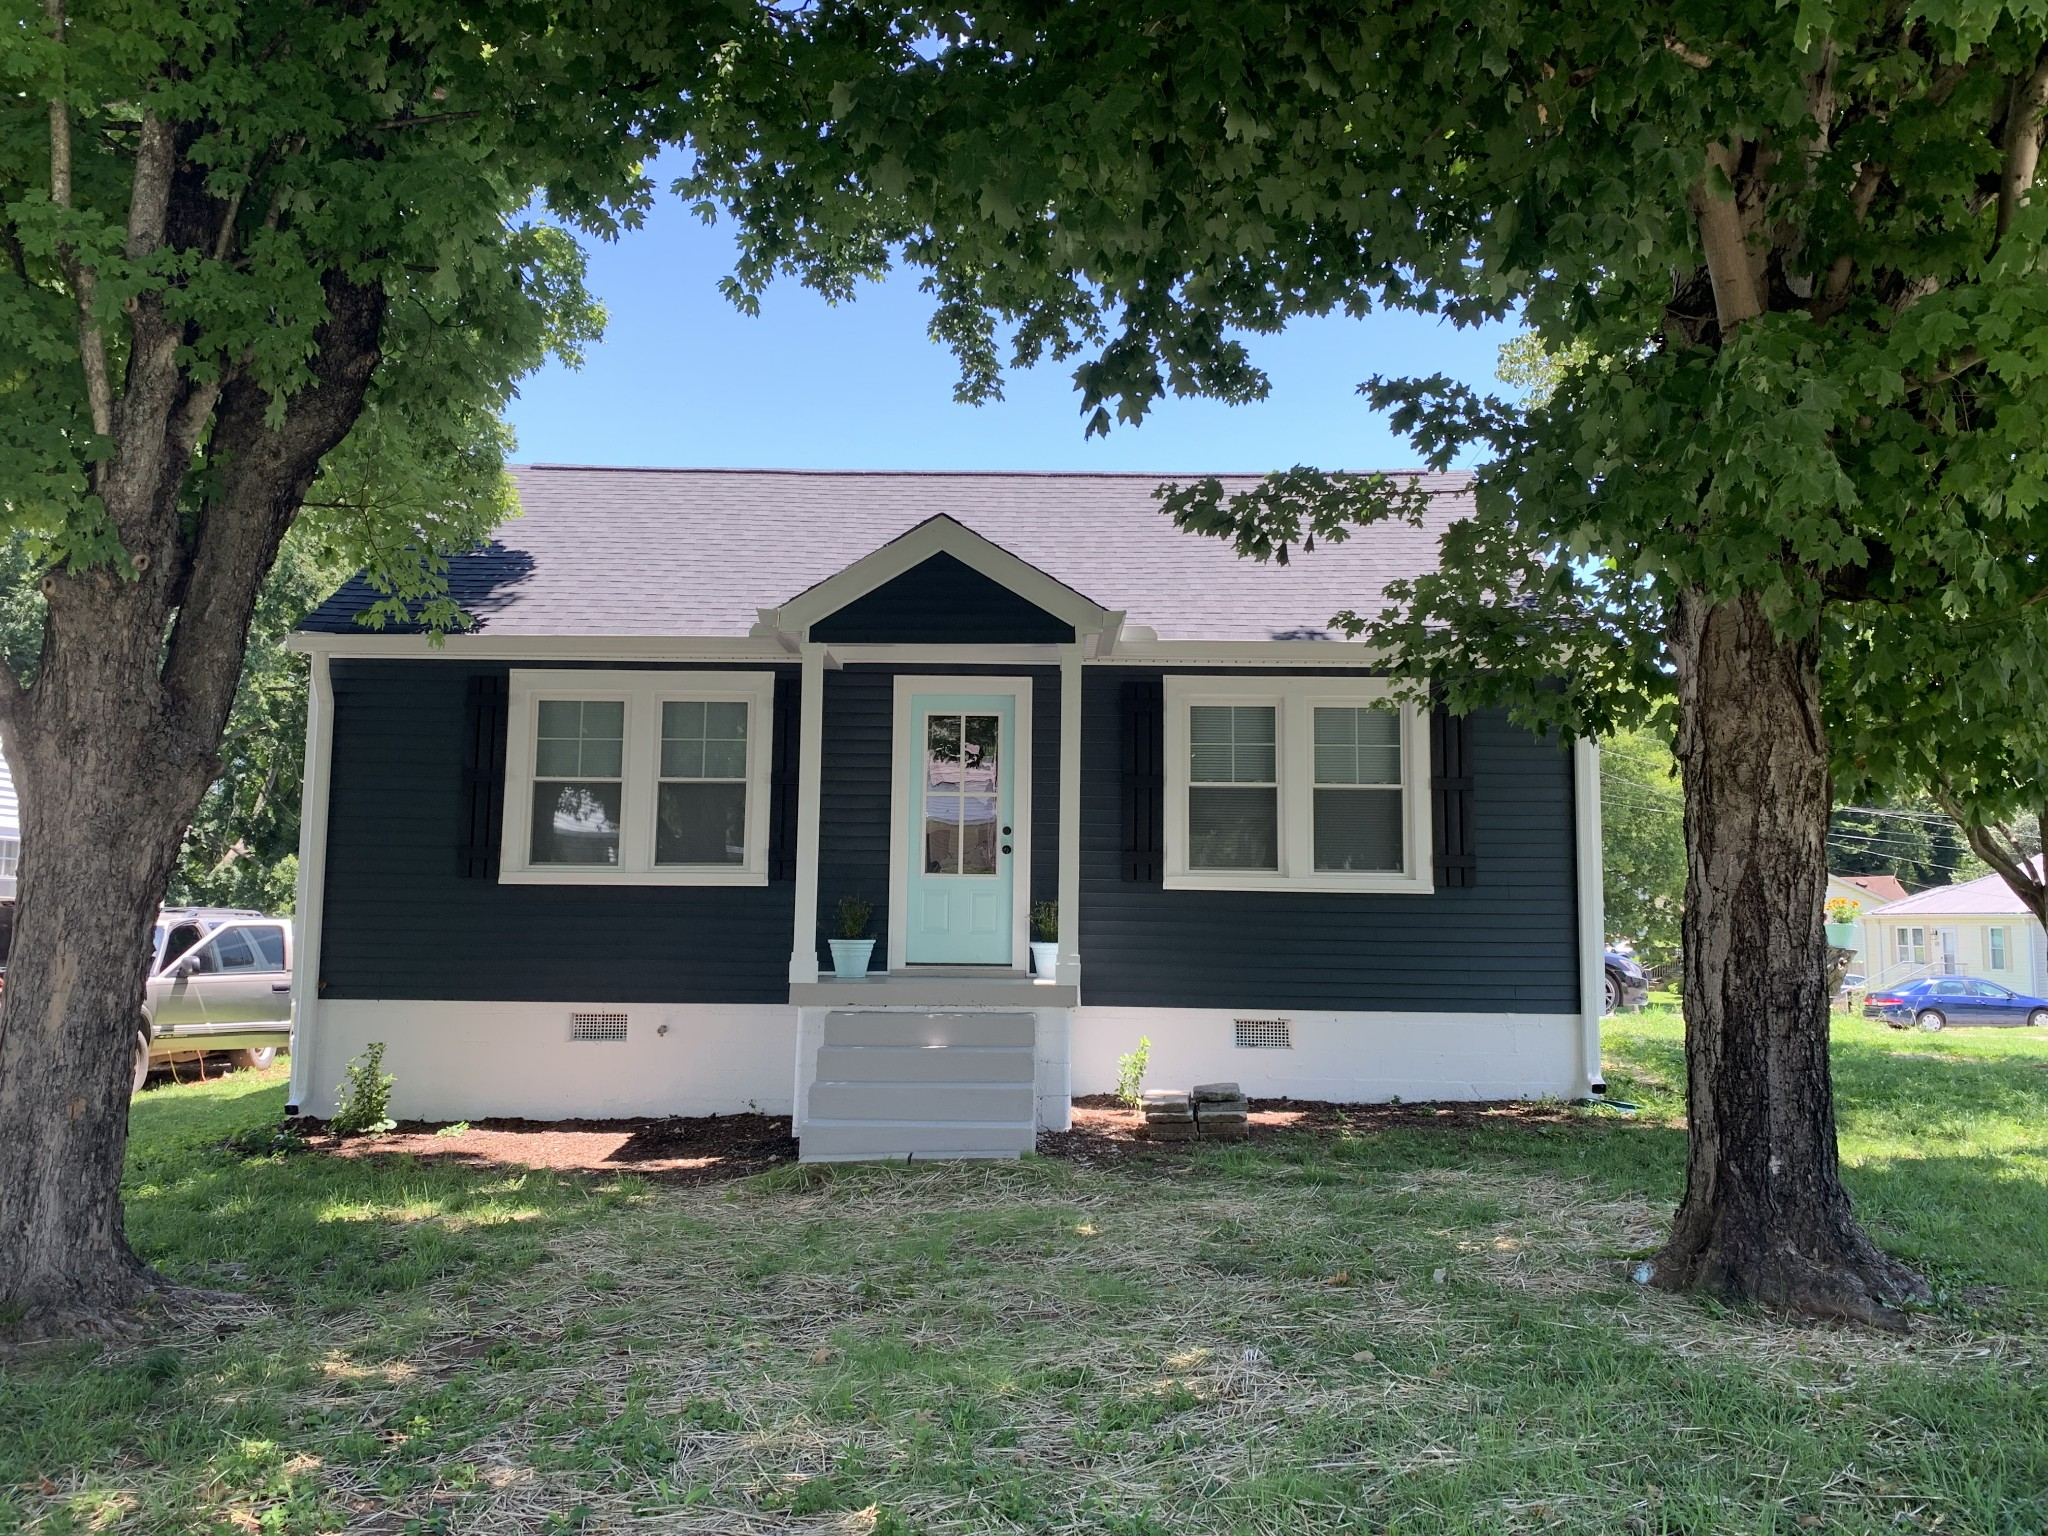 Home has been renovated inside & out with new exterior vinyl, gutters & windows. New Roof. New interior paint, new flooring & refinished floors, new cabinets & counter tops. New light fixtures.Ship lap in kitchen & laundry room as well as board & batten in bathroom. Home is move in ready.